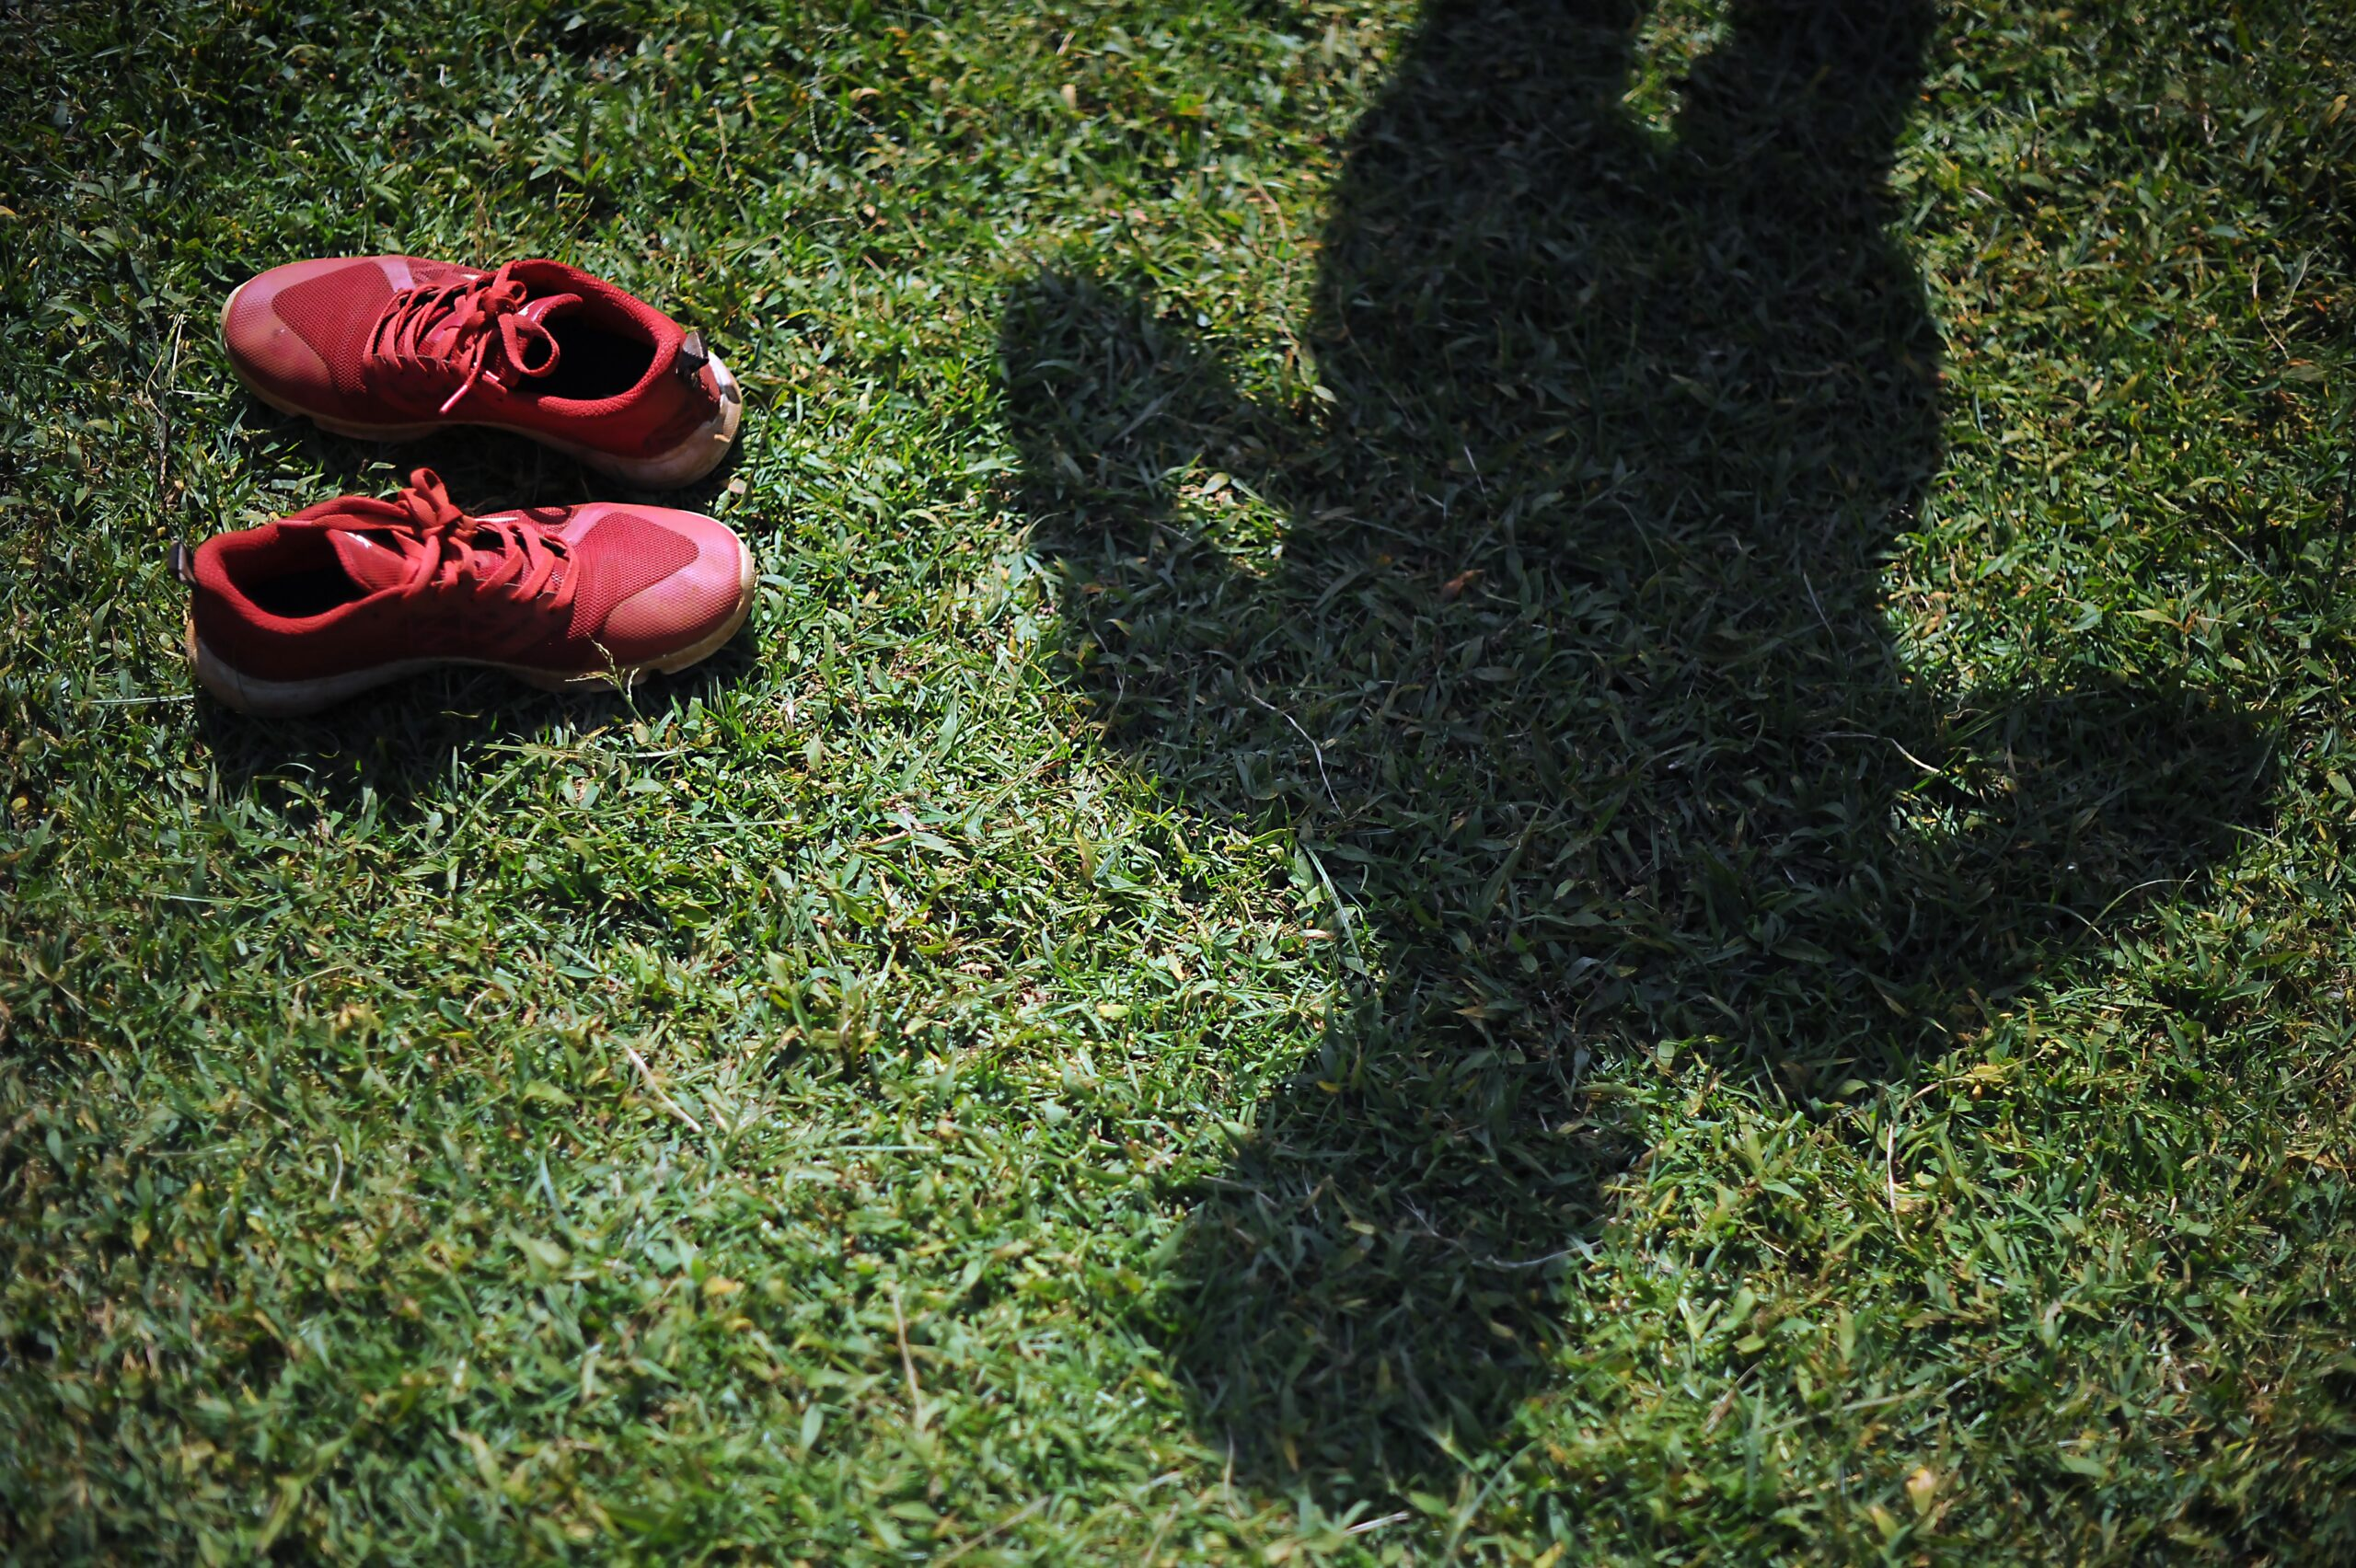 An athlete's shadow faces grass with a pair of red sneakers on the side